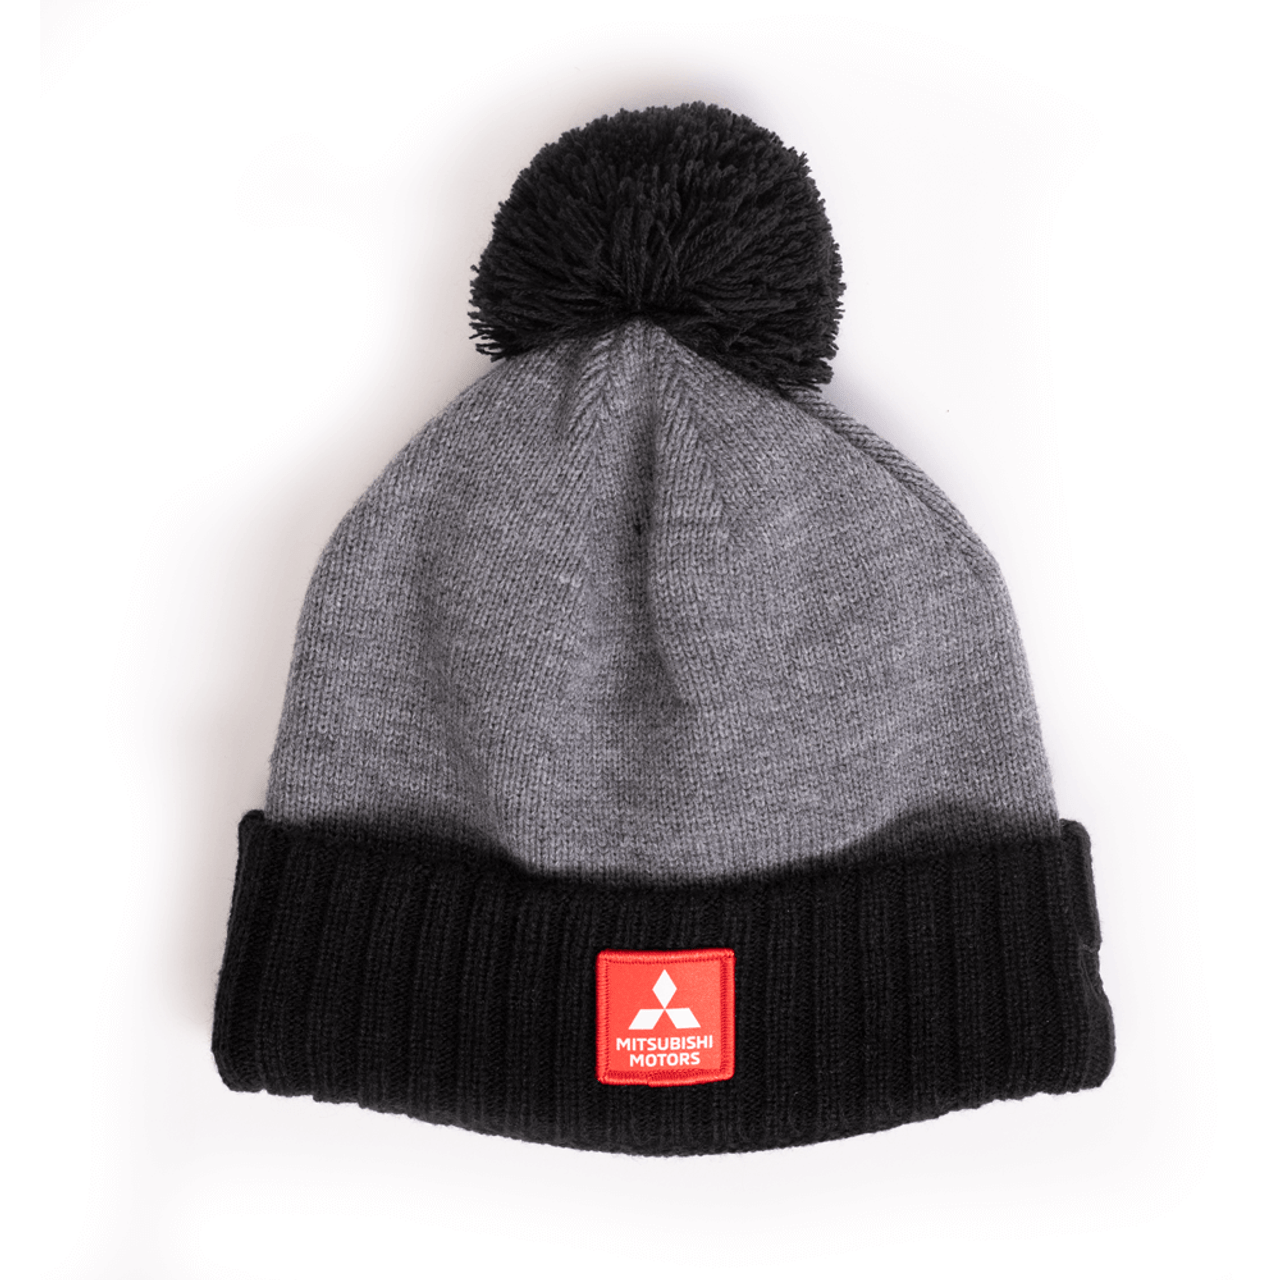 Grey and Black Beanie with Poof